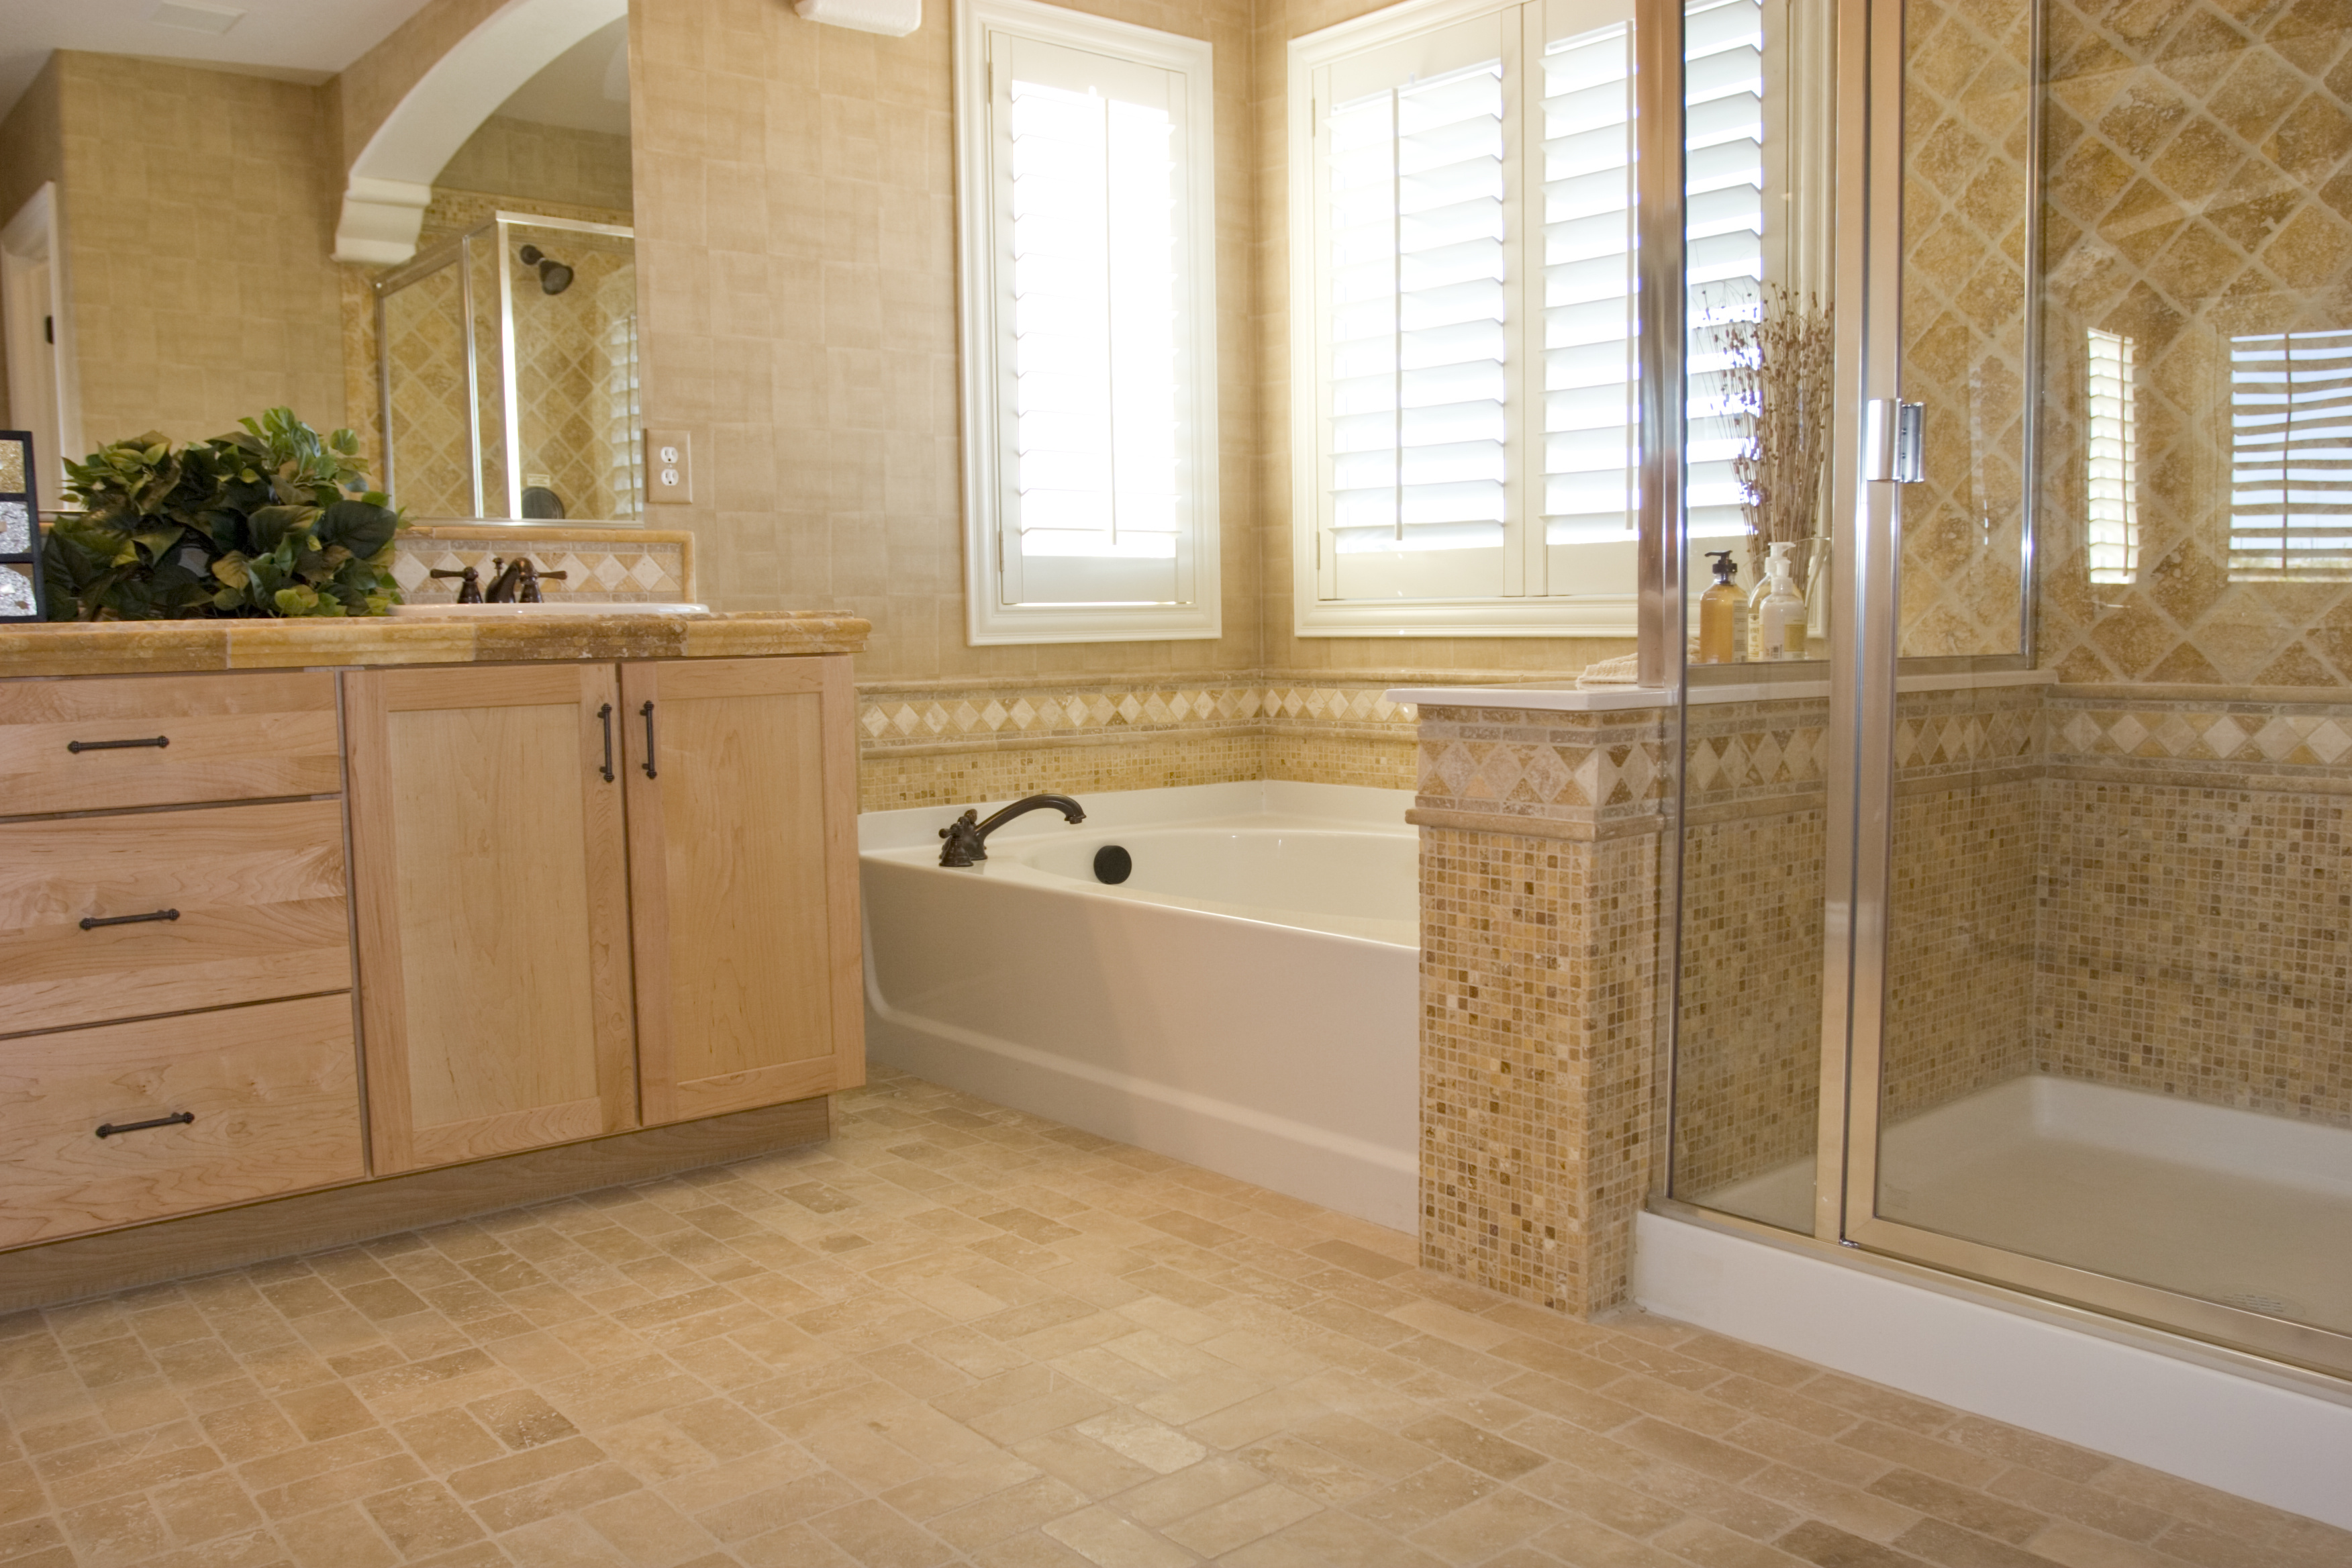 Remodel Bathroom home remodeling services fair bathroom remodeling service Bathroom Remodeling St Louis